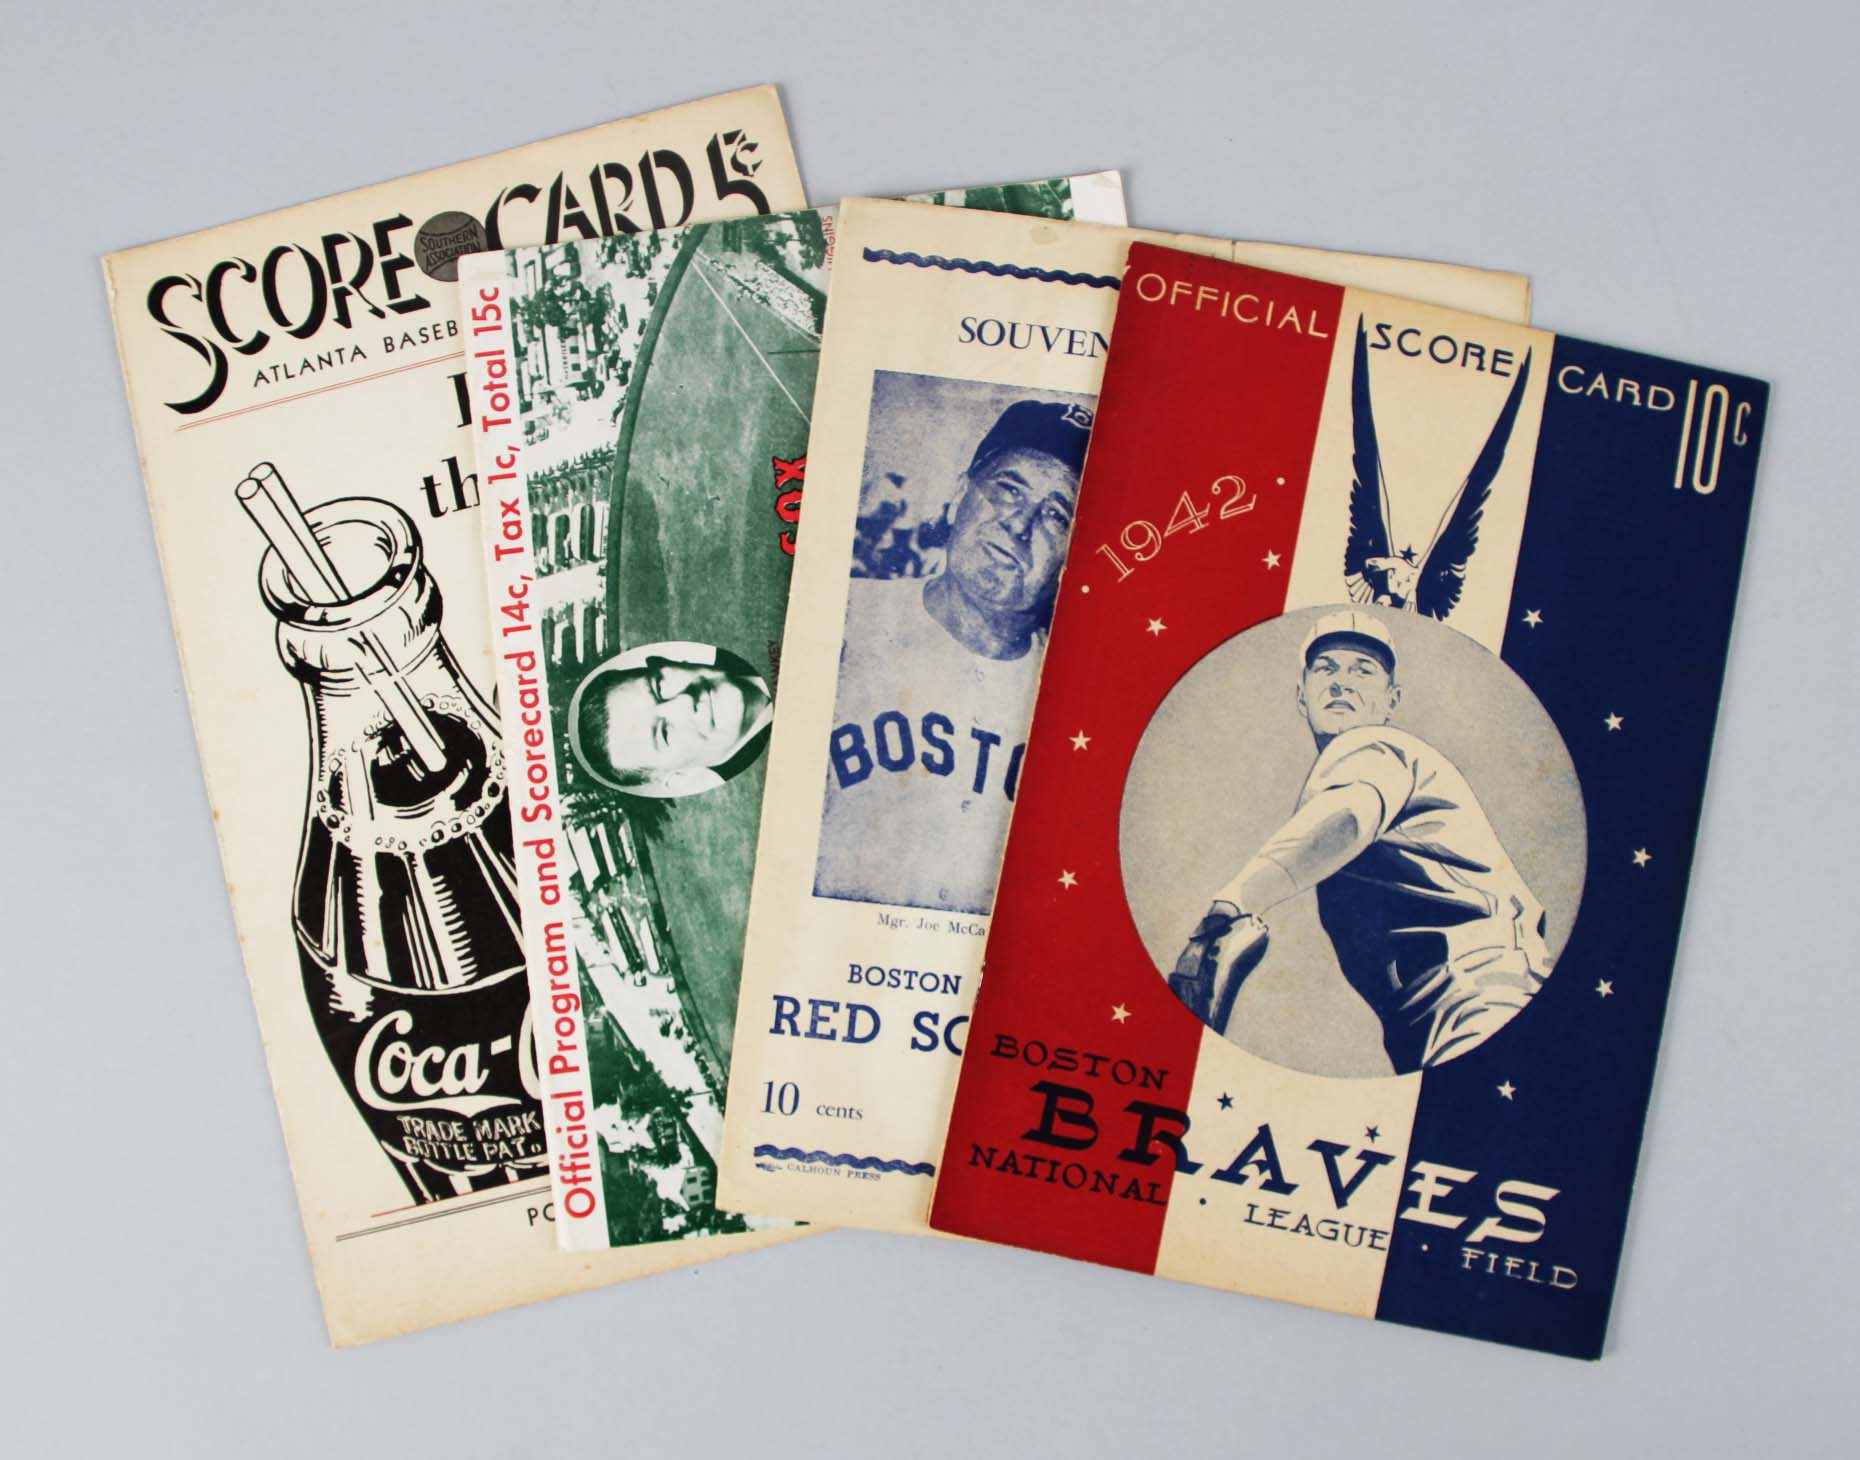 1939 Boston Red Sox vs. Atlanta Crackers Minor League Scorecard feat. Ted Williams & (3) Add. Programs